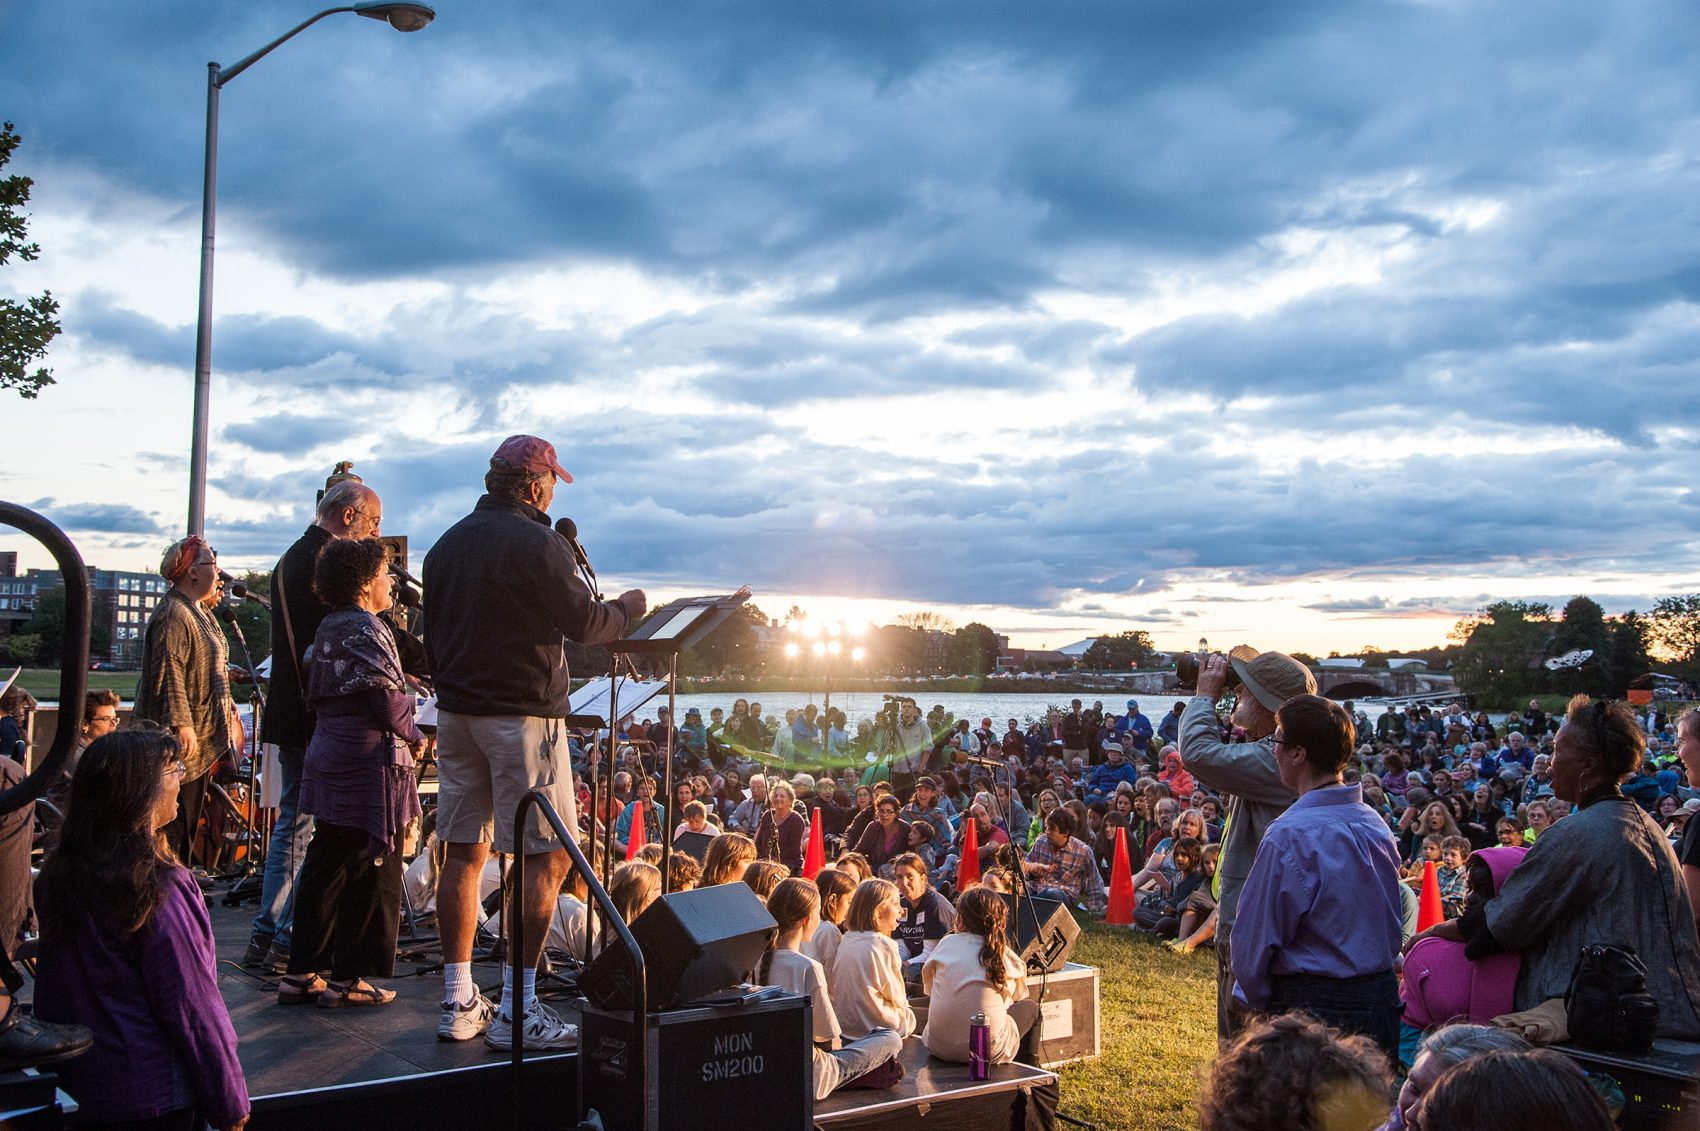 The crowd at RiverSing in 2013. (Courtesy Revels)